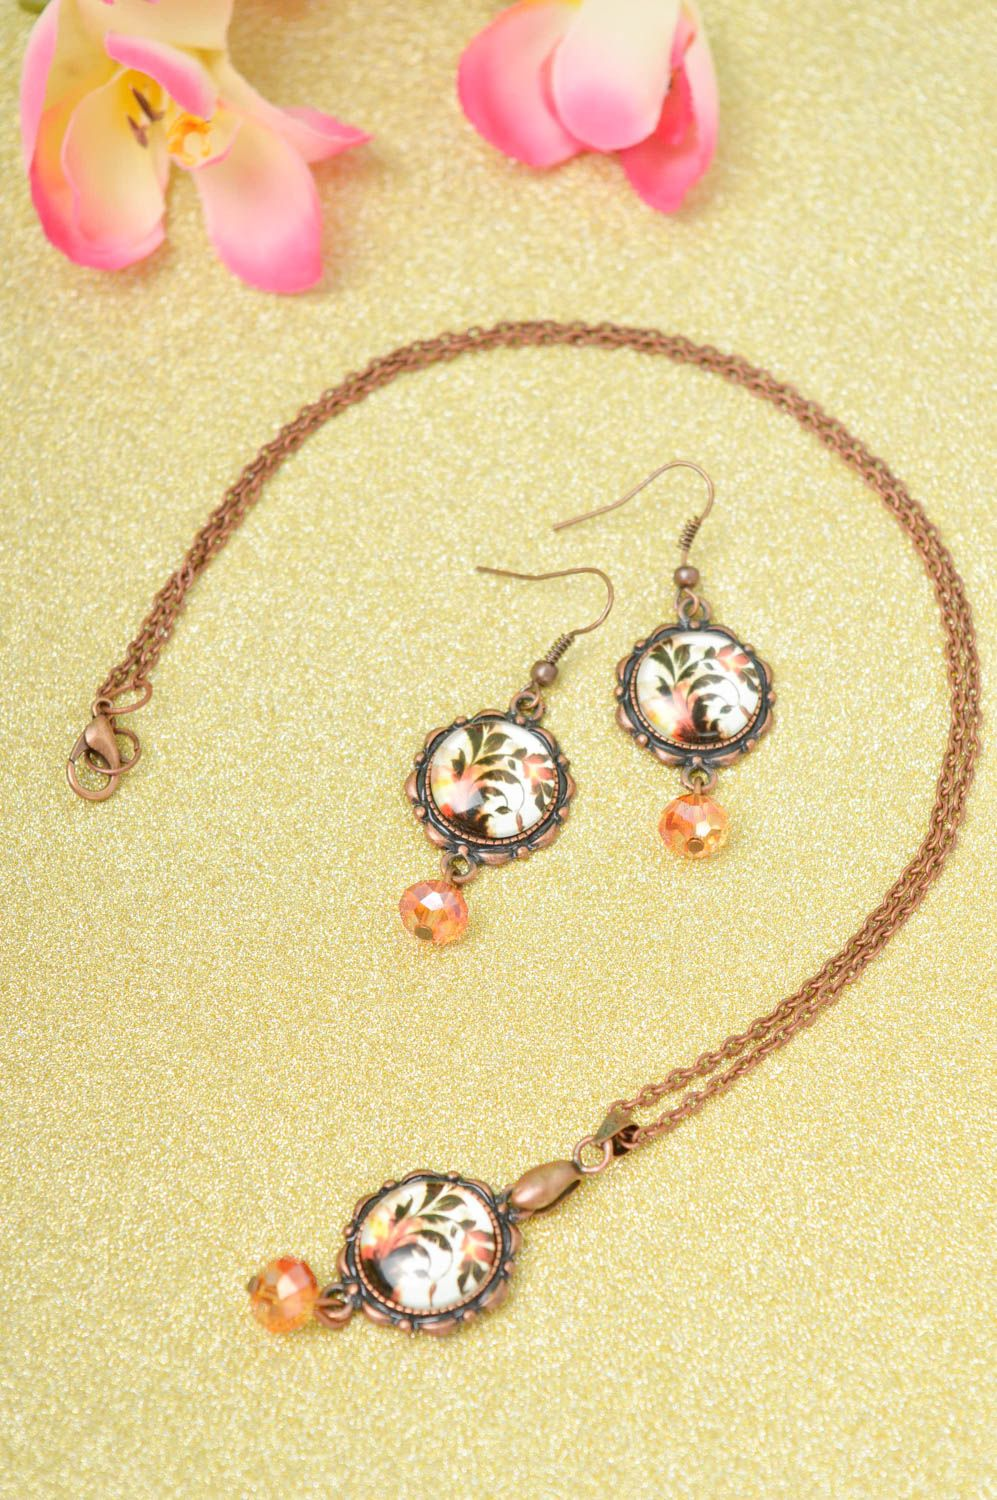 Handmade metal jewelry set glass bead earrings pendant necklace gifts for her photo 1